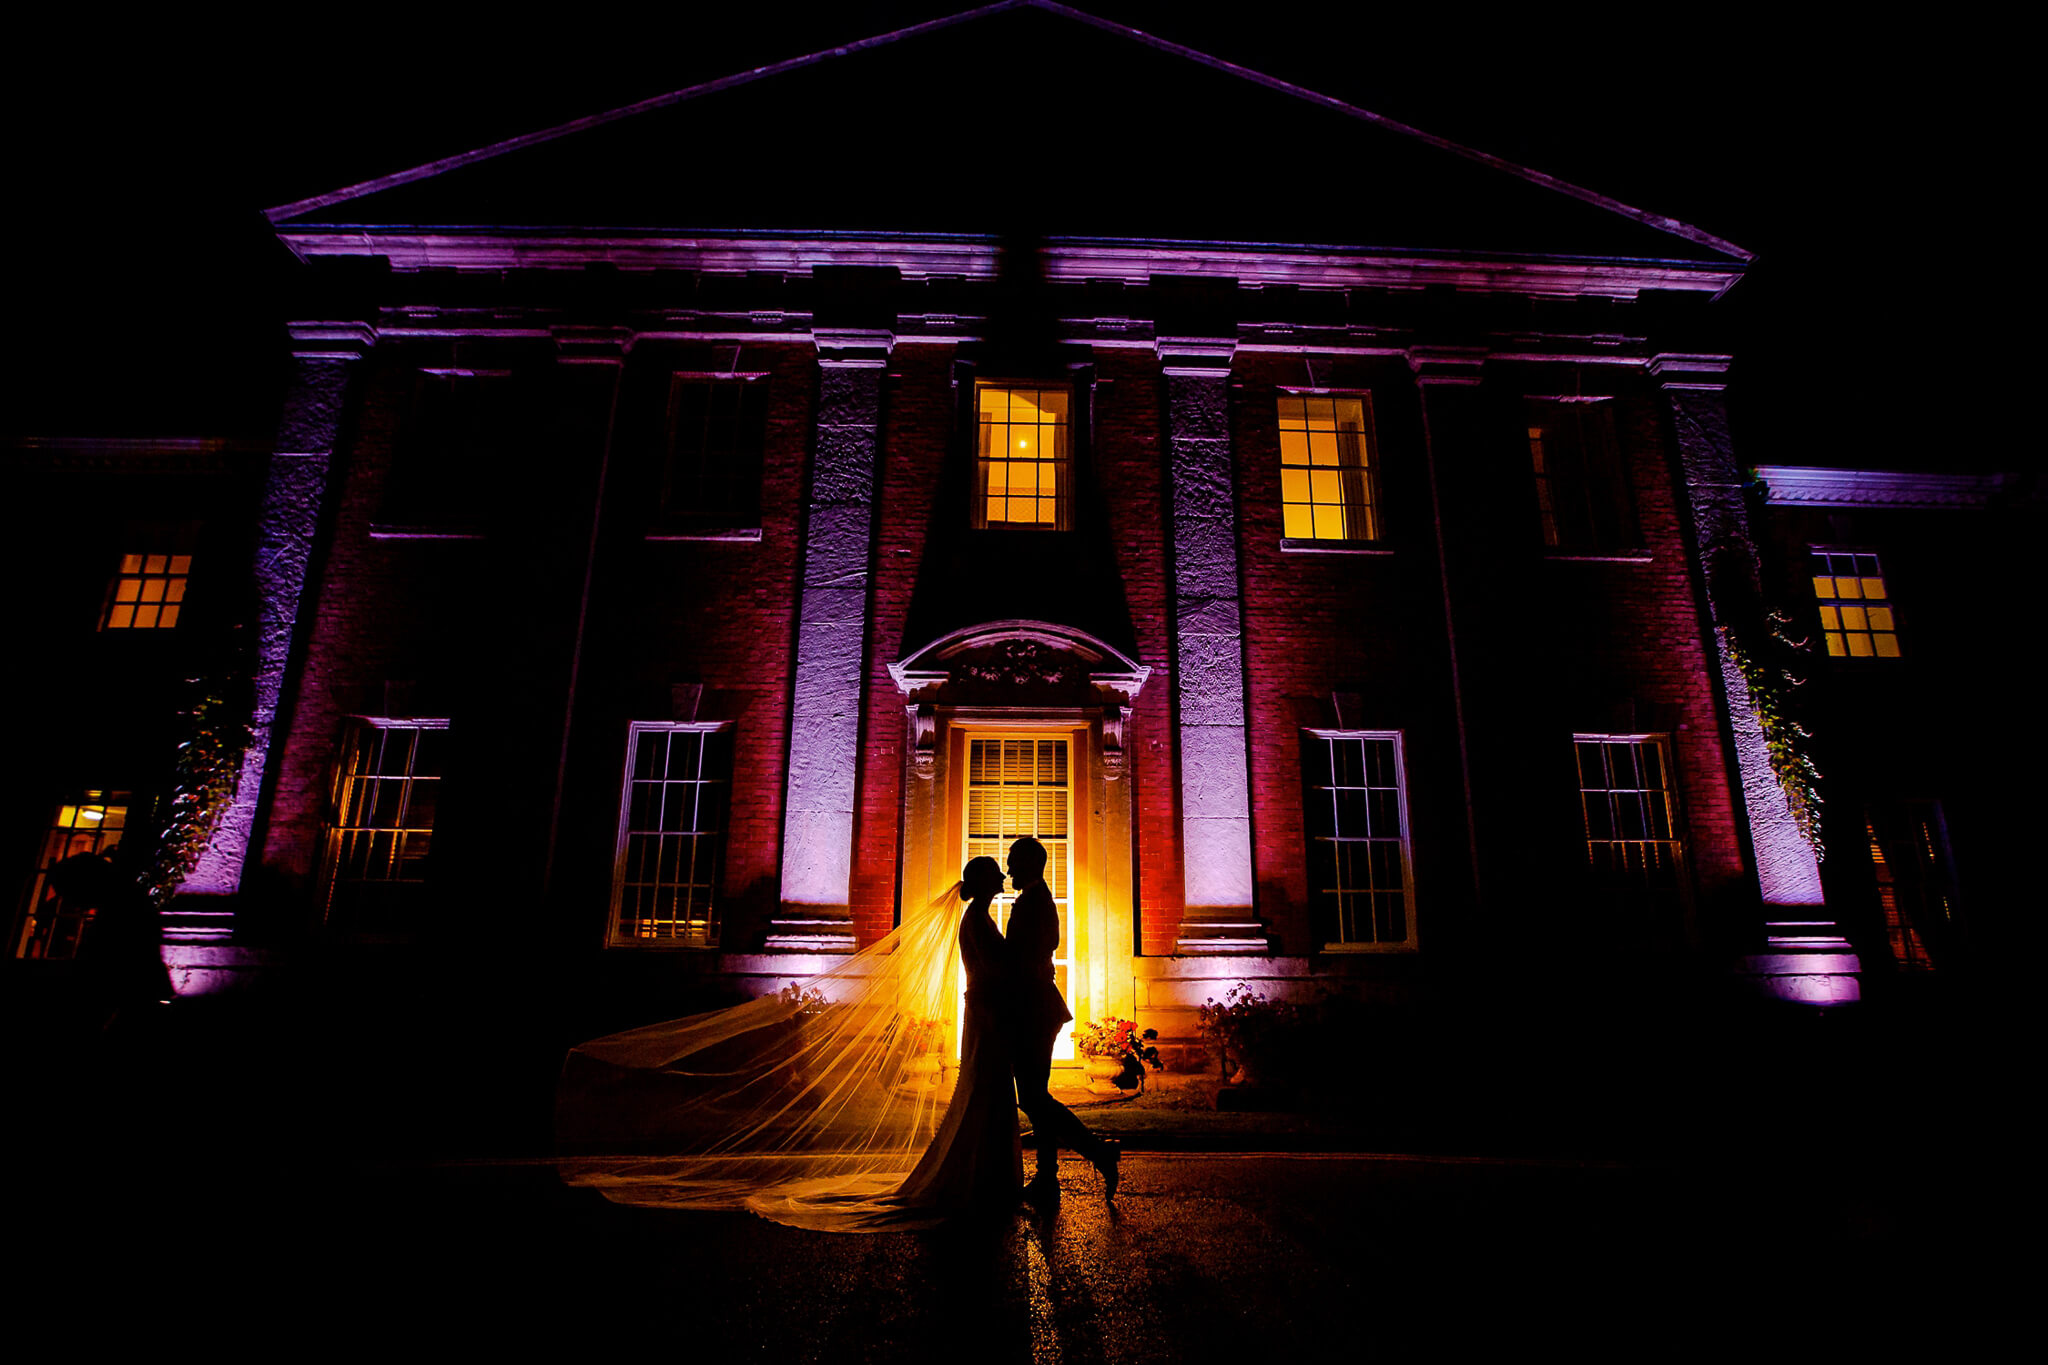 mottram-hall-wedding-photographer-cheshire-035